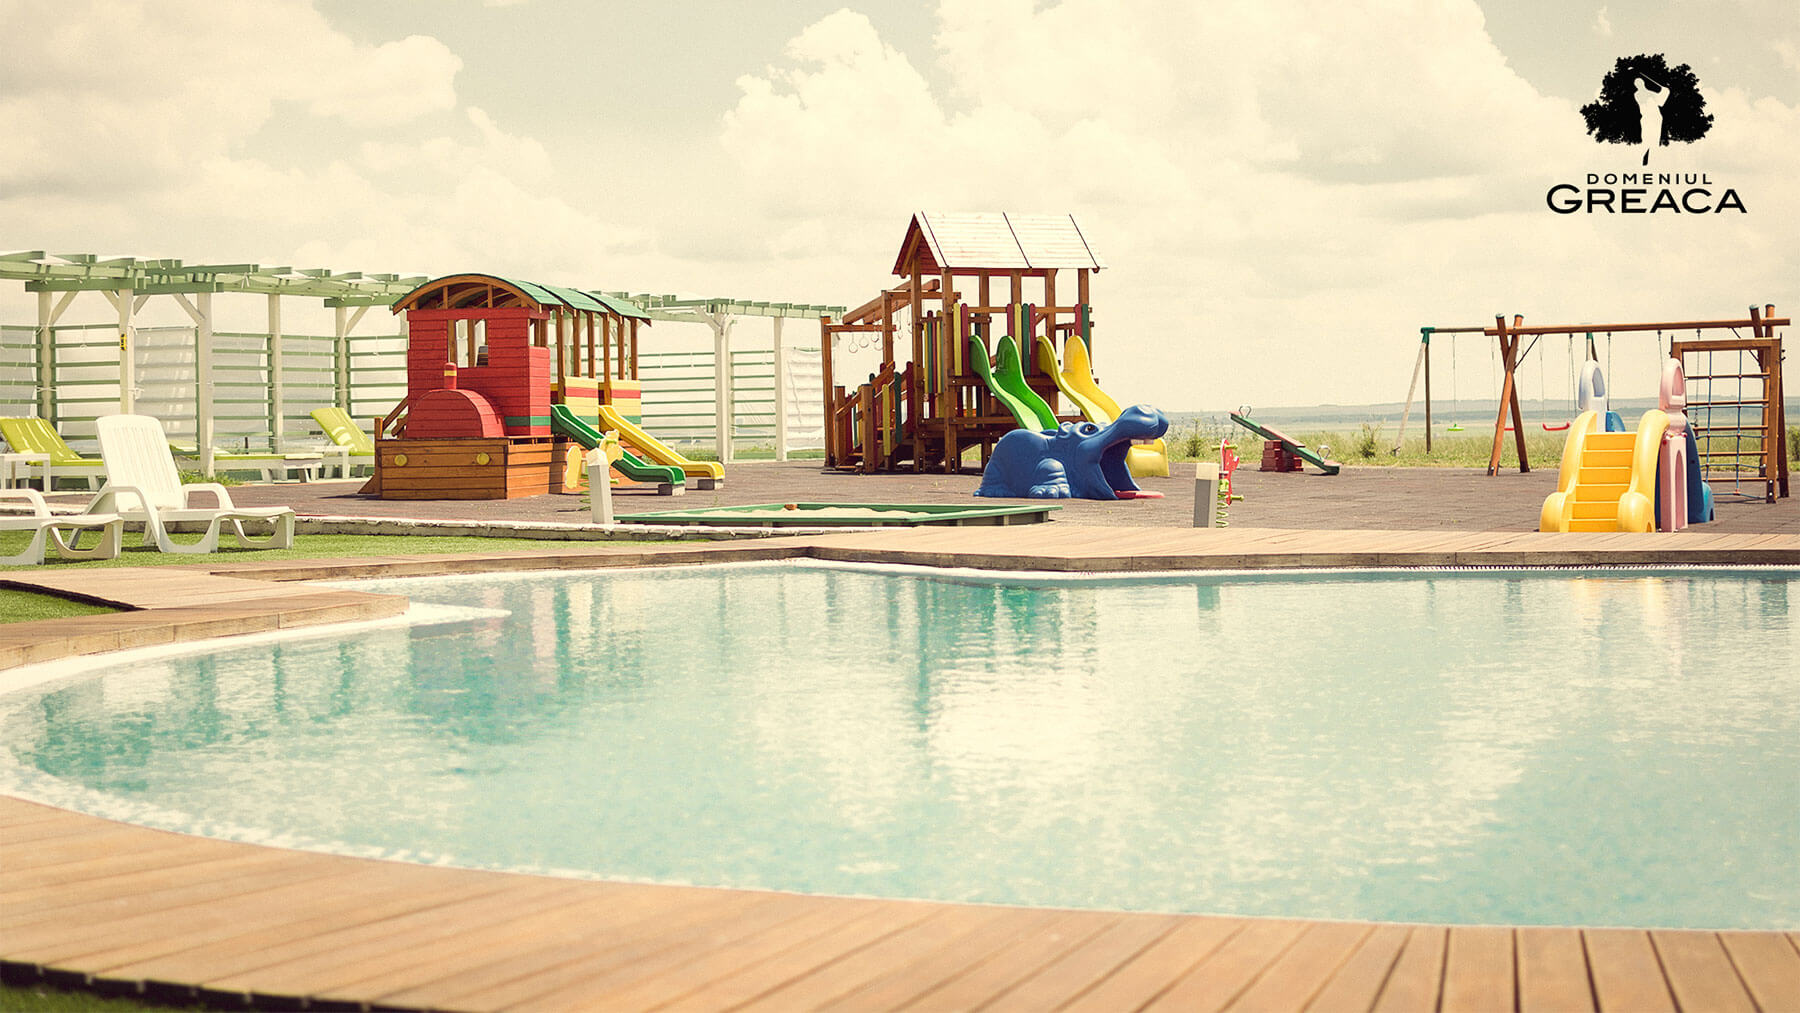 domeniul-greaca-kiddy-land-piscina